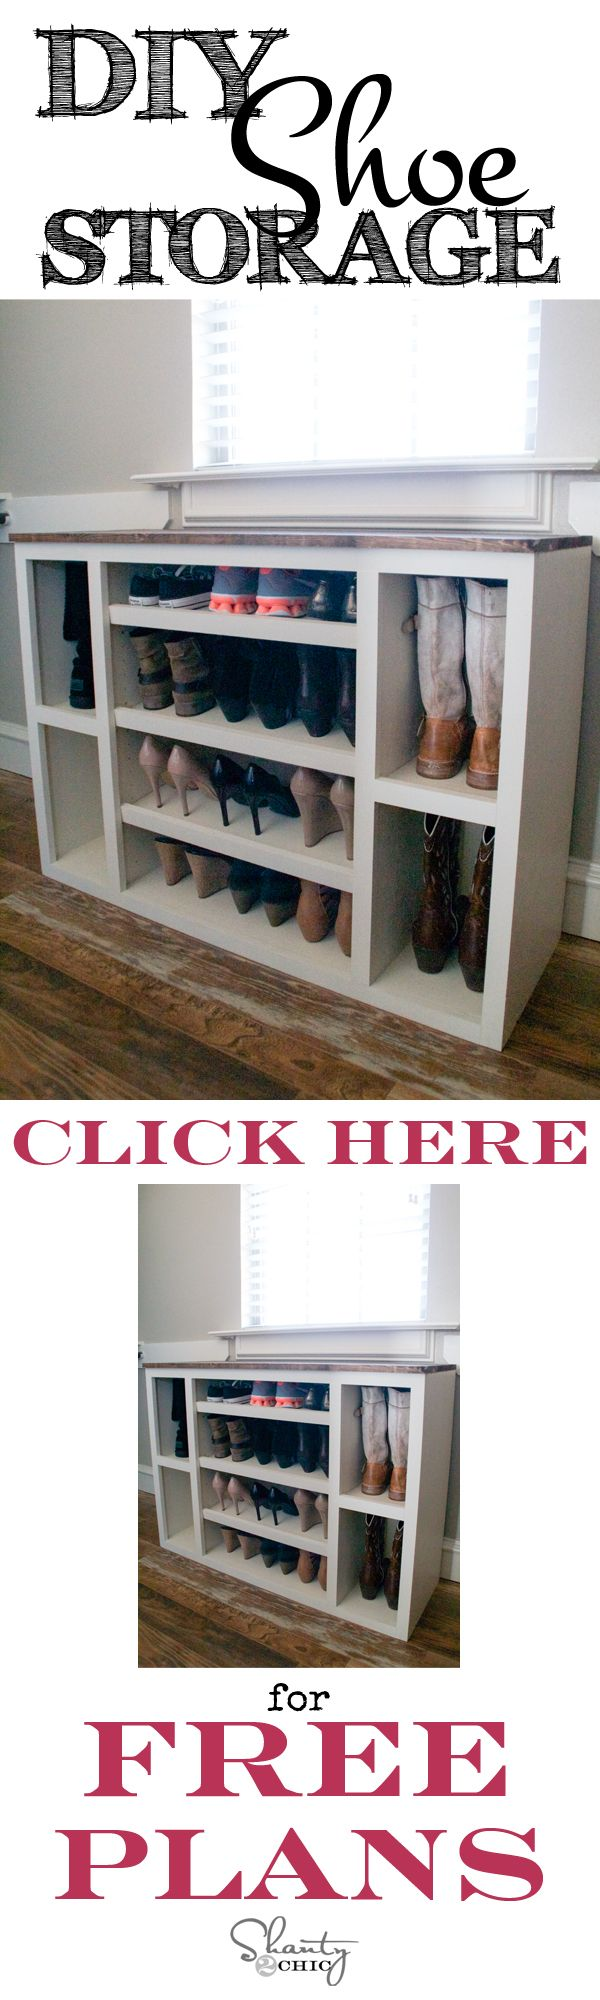 DIY Shoe Storage Cabinet - AMAZING and Free Plans on shanty-2-chic.com